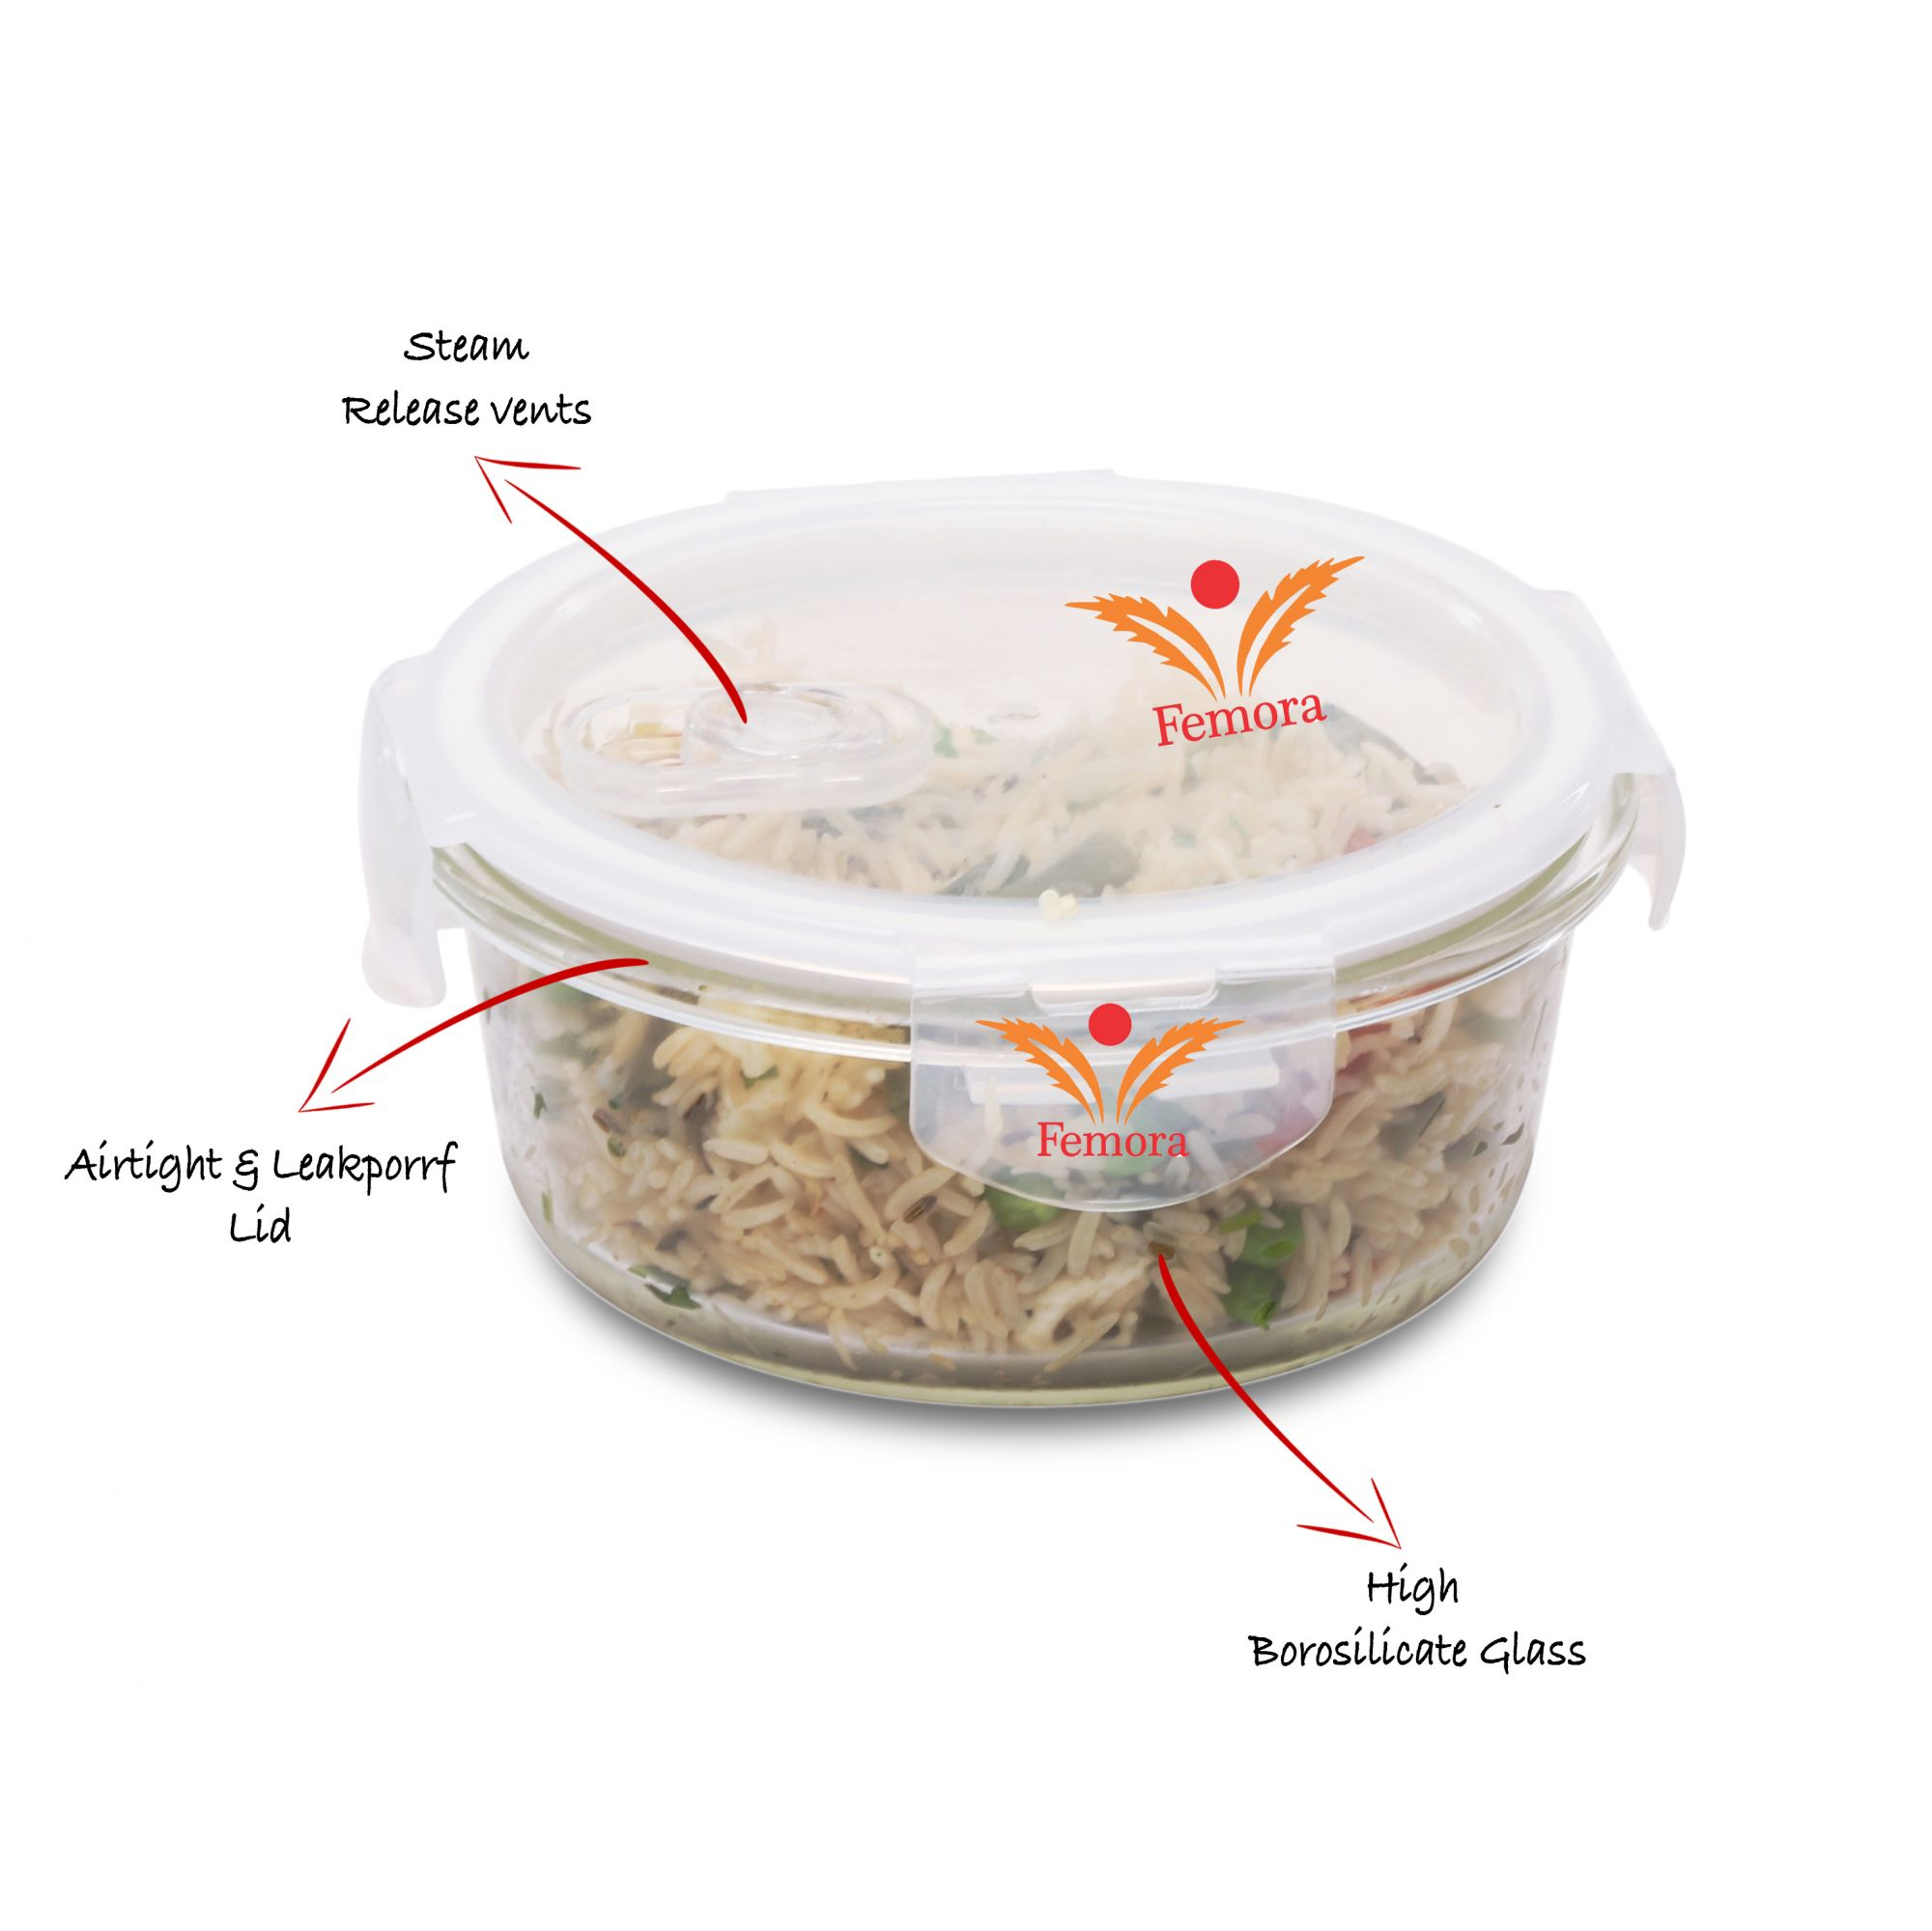 Femora Borosilicate Lunch Box Round Containers ,380 ml,Set of 2